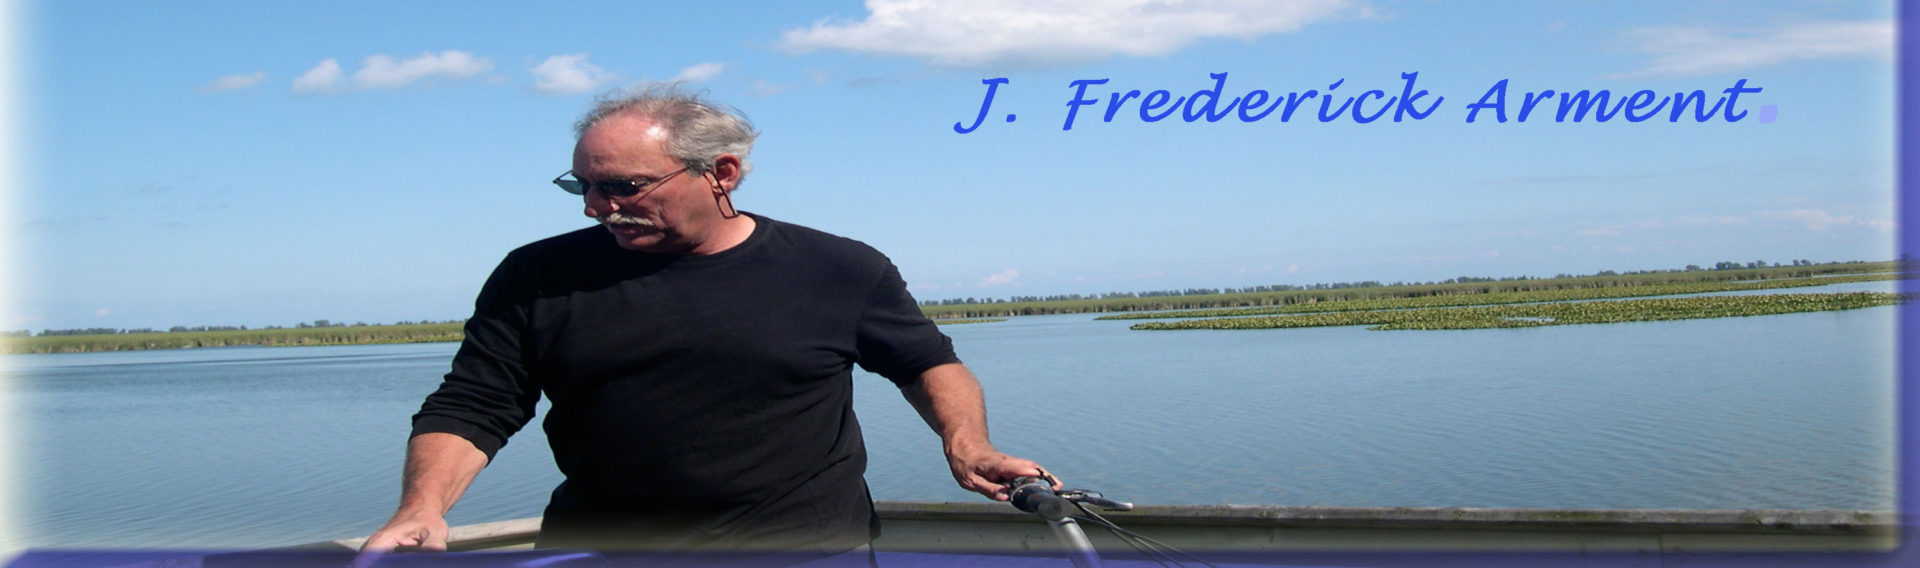 Official Page of J. Frederick Arment